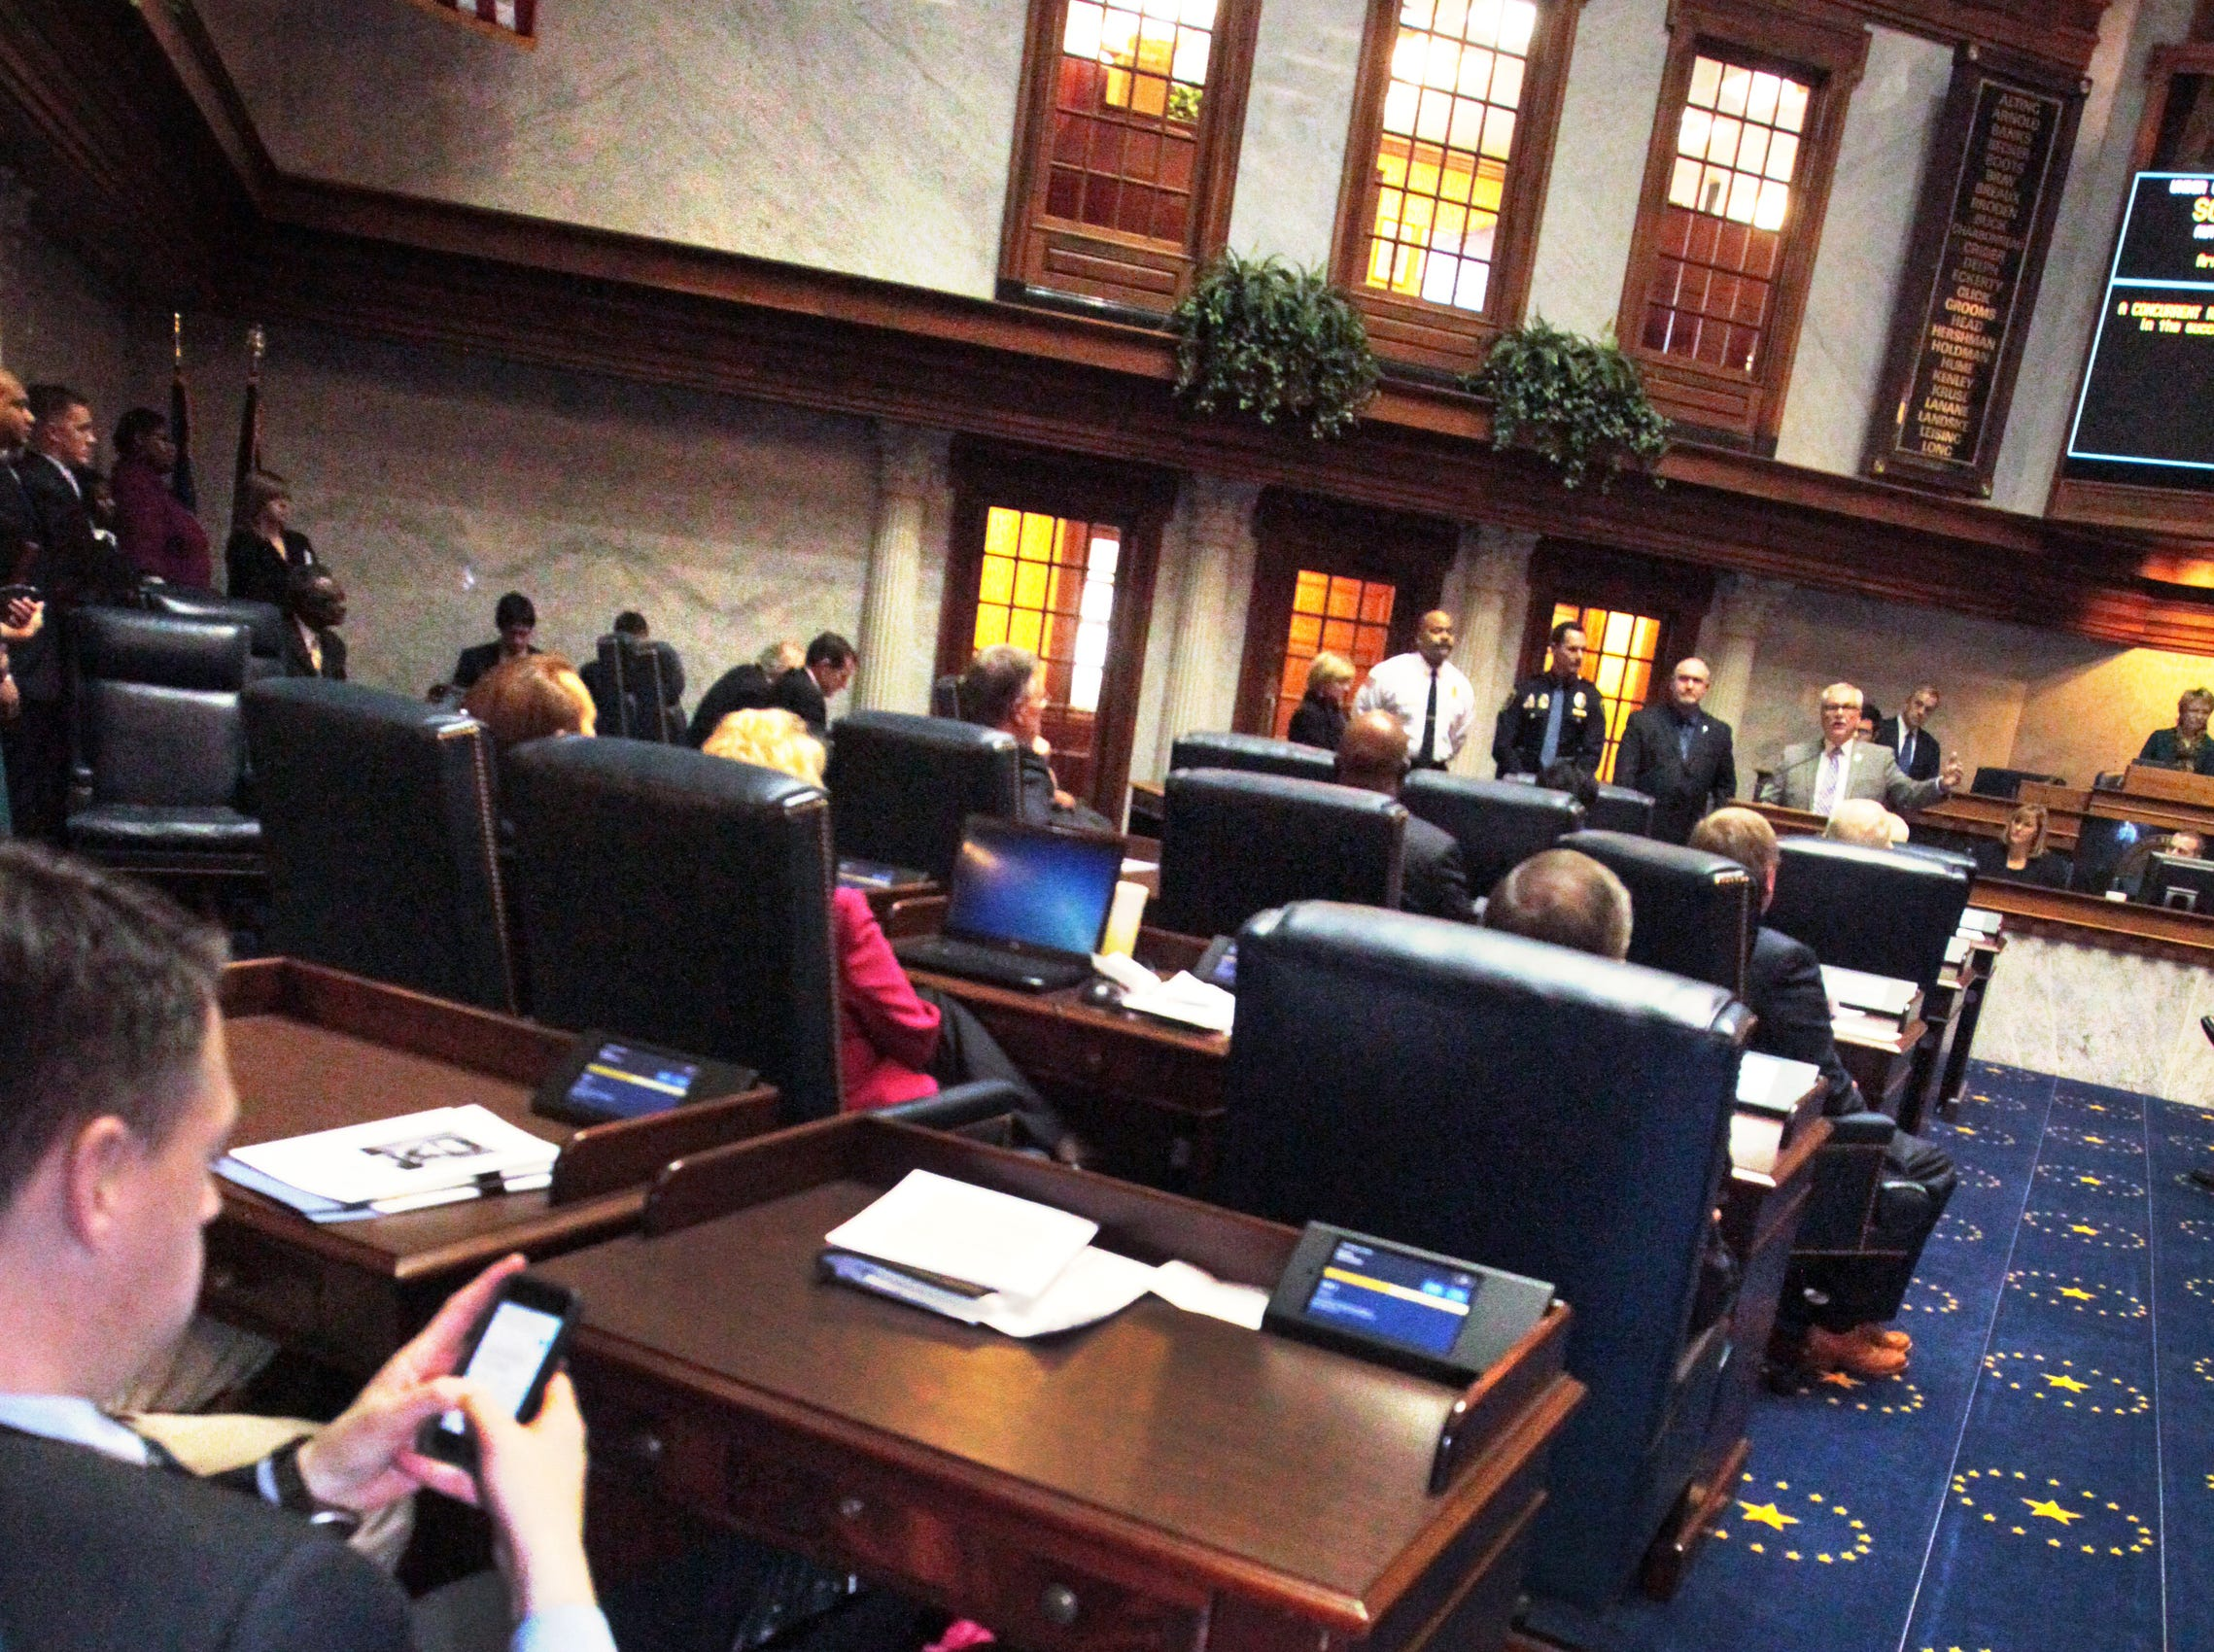 Four-year-old Lilly Banks plays under the desk of her father, Sen. James Banks, R-Columbia City, as he and his colleagues in the Indiana General Assembly take care of business on Organization Day at the Statehouse on Tuesday, Nov. 19, 2013. This is the second Organization Day for Lilly, who is the oldest of Banks' three daughters. Charlie Nye / The Star.